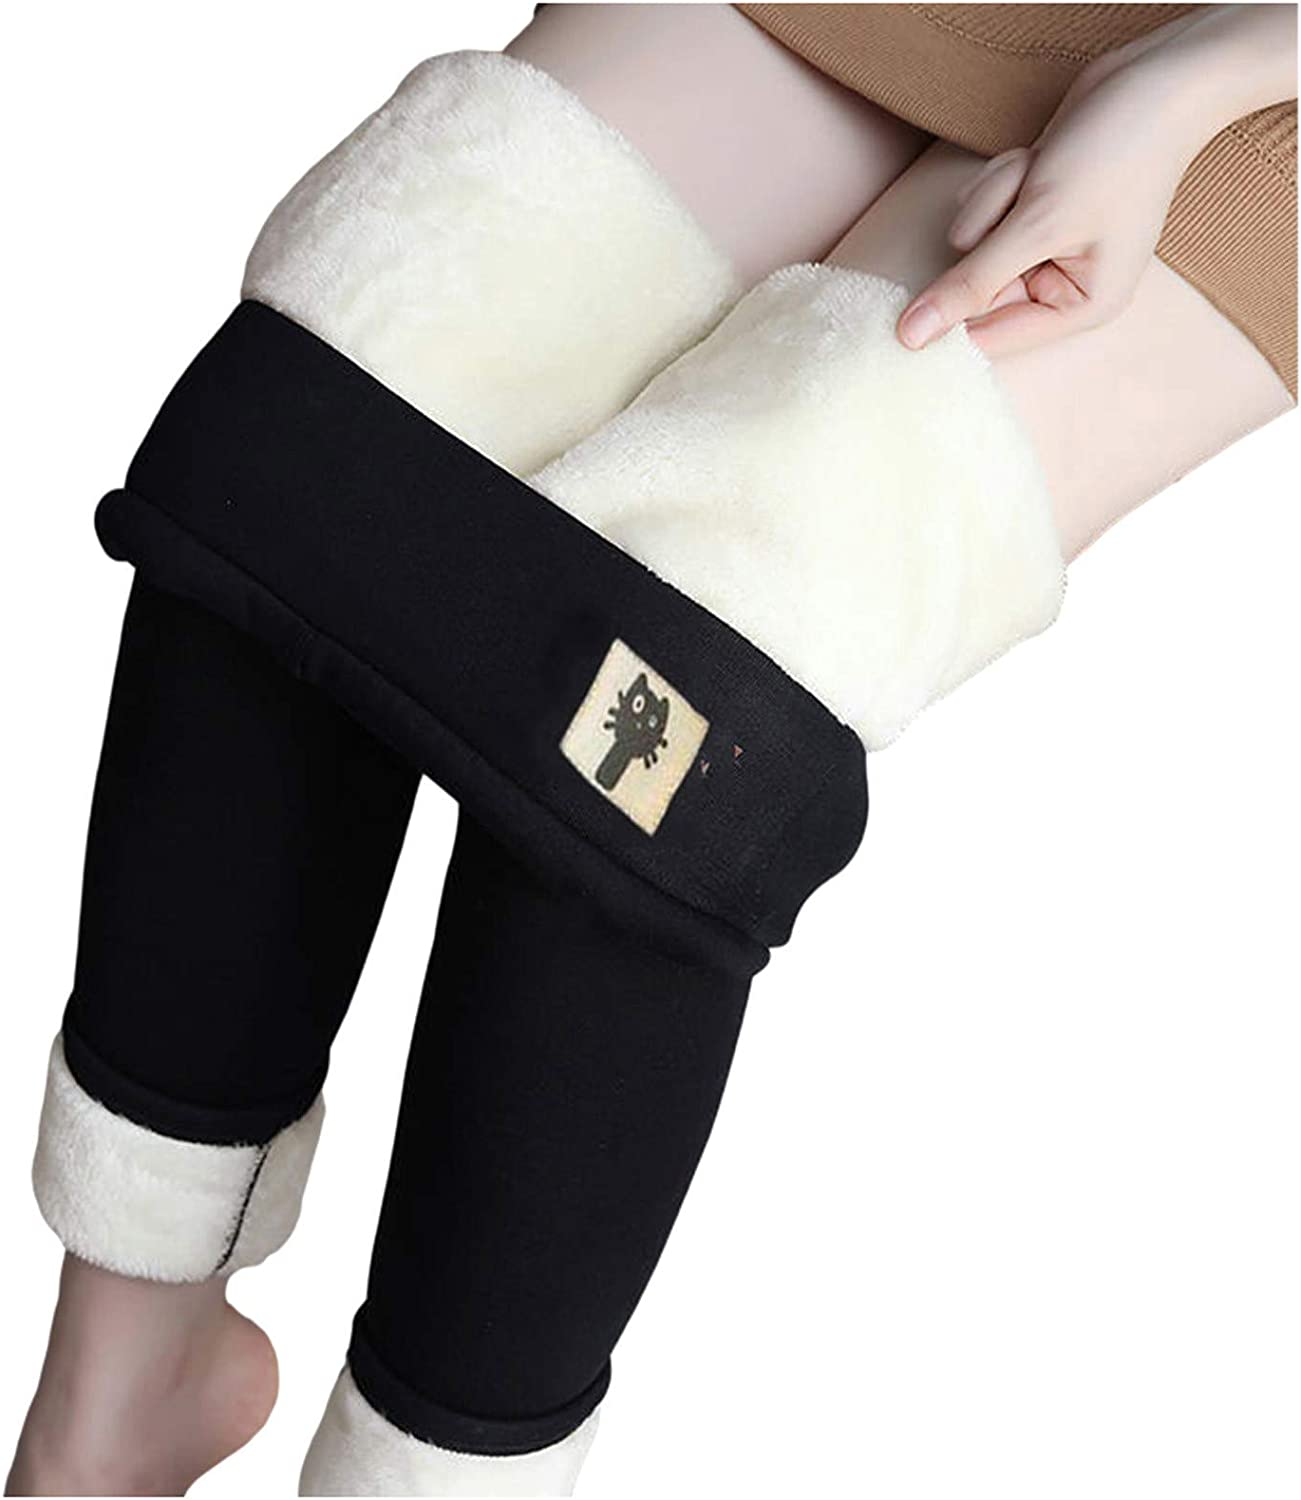 Winter Sherpa Fleece Lined Leggings for Women, High Waist Stretchy Thick Cashmere Leggings Plush Warm Thermal Pants